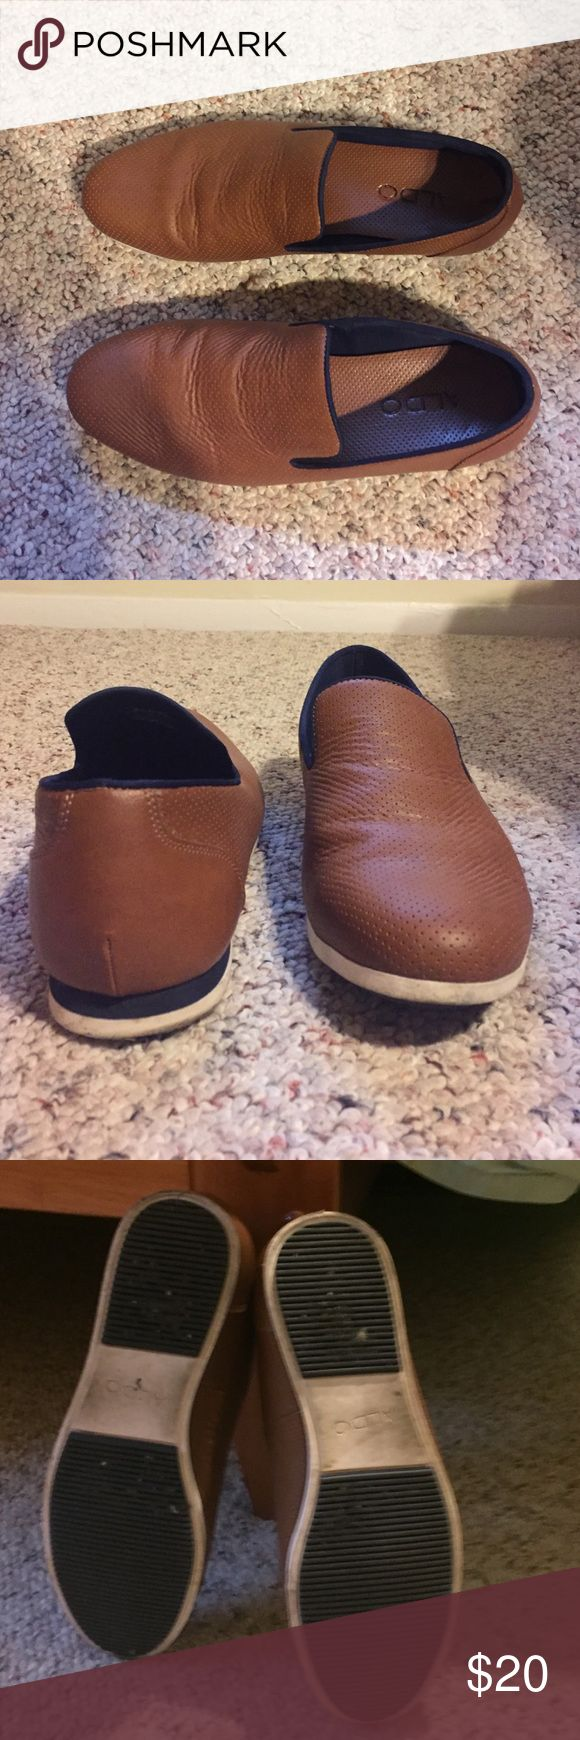 Aldo Loafers Men's Size 8 Also Loafers men's size 8. Have been worn 2-3 times. No original box. Very comfortable and cute shoes! Aldo Shoes Loafers & Slip-Ons